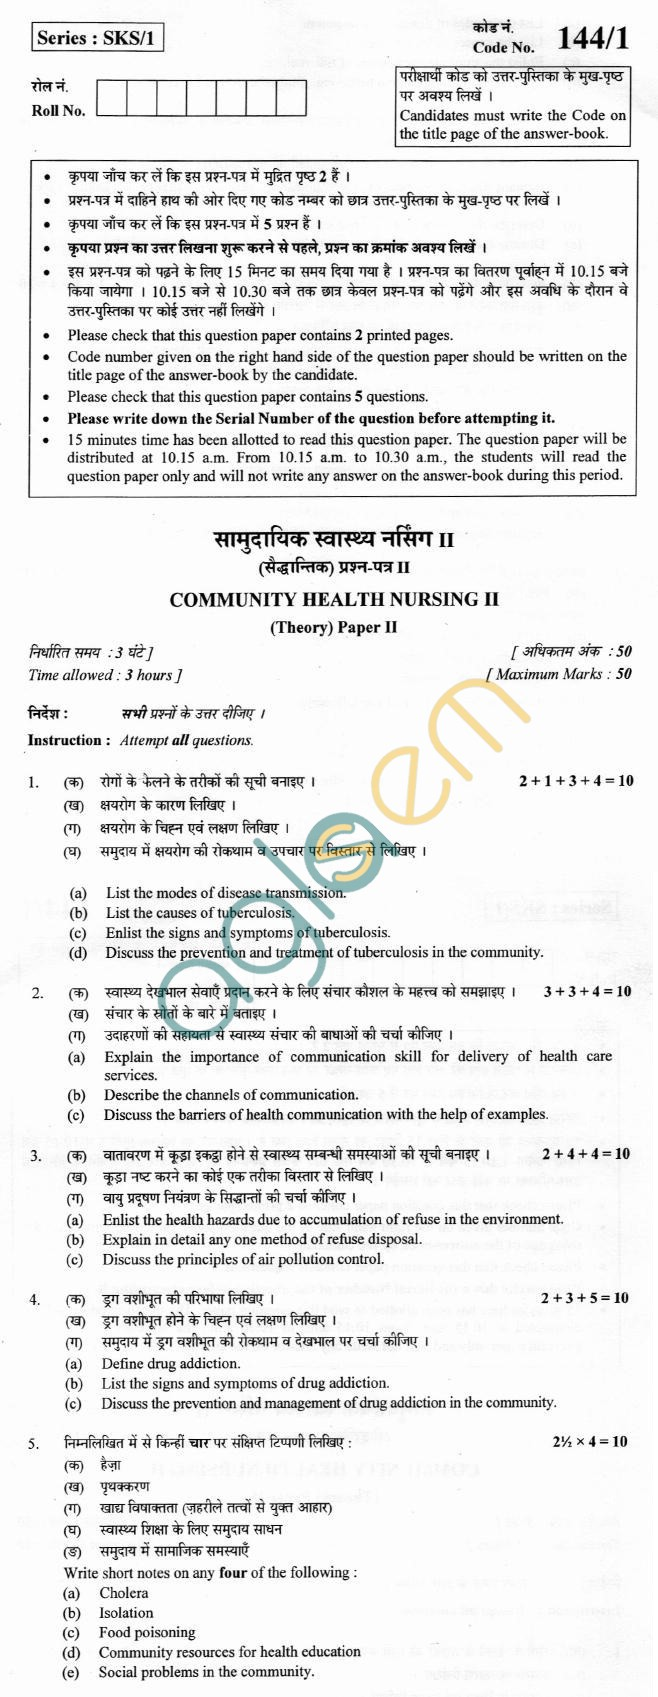 CBSE Board Exam 2013 Class XII Question Paper - Commmunity health nursing II